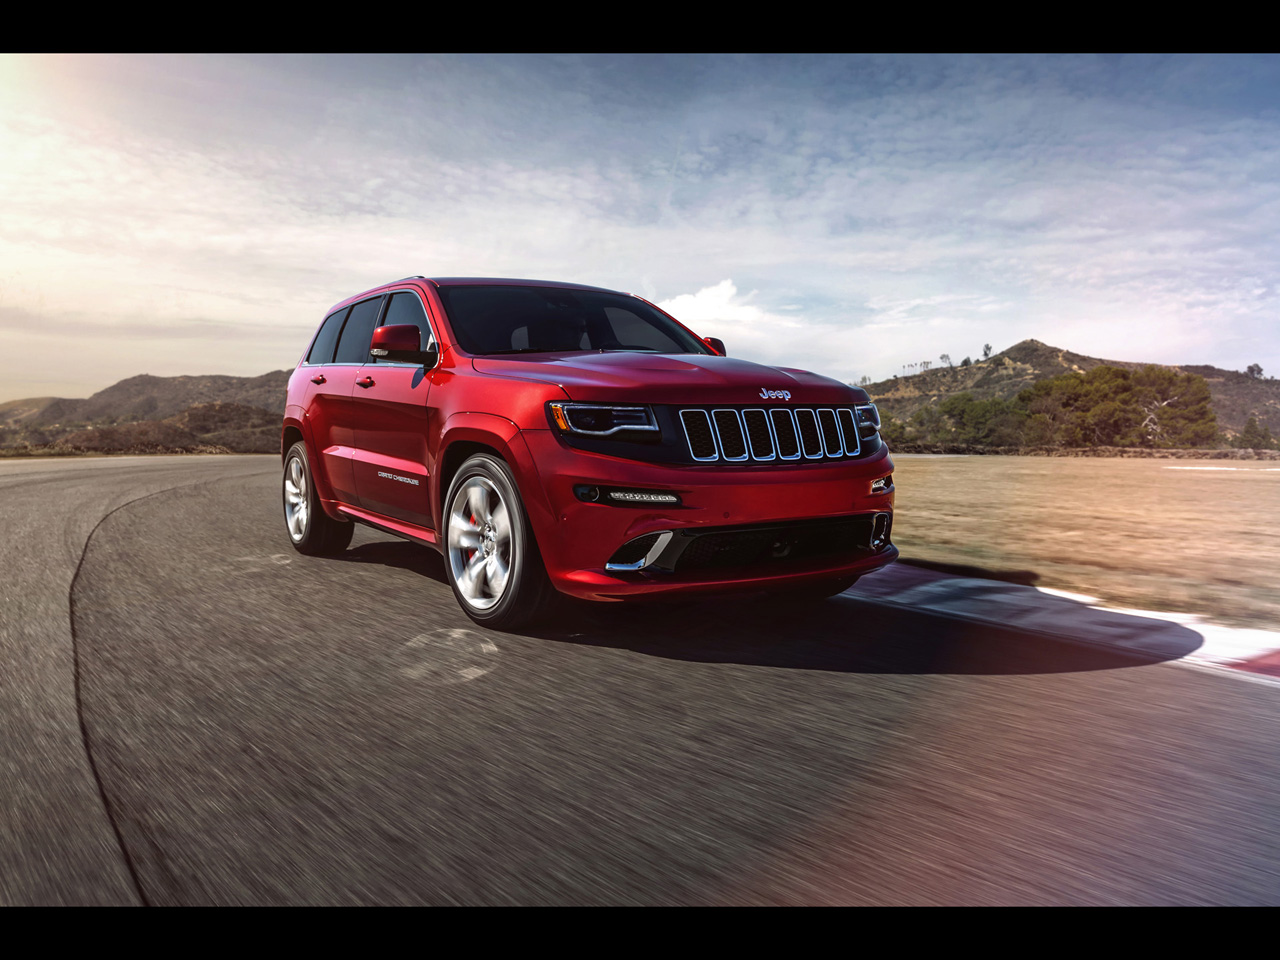 2014 Jeep Grand Cherokee Srt Wallpapers By Cars Wallpapersnet